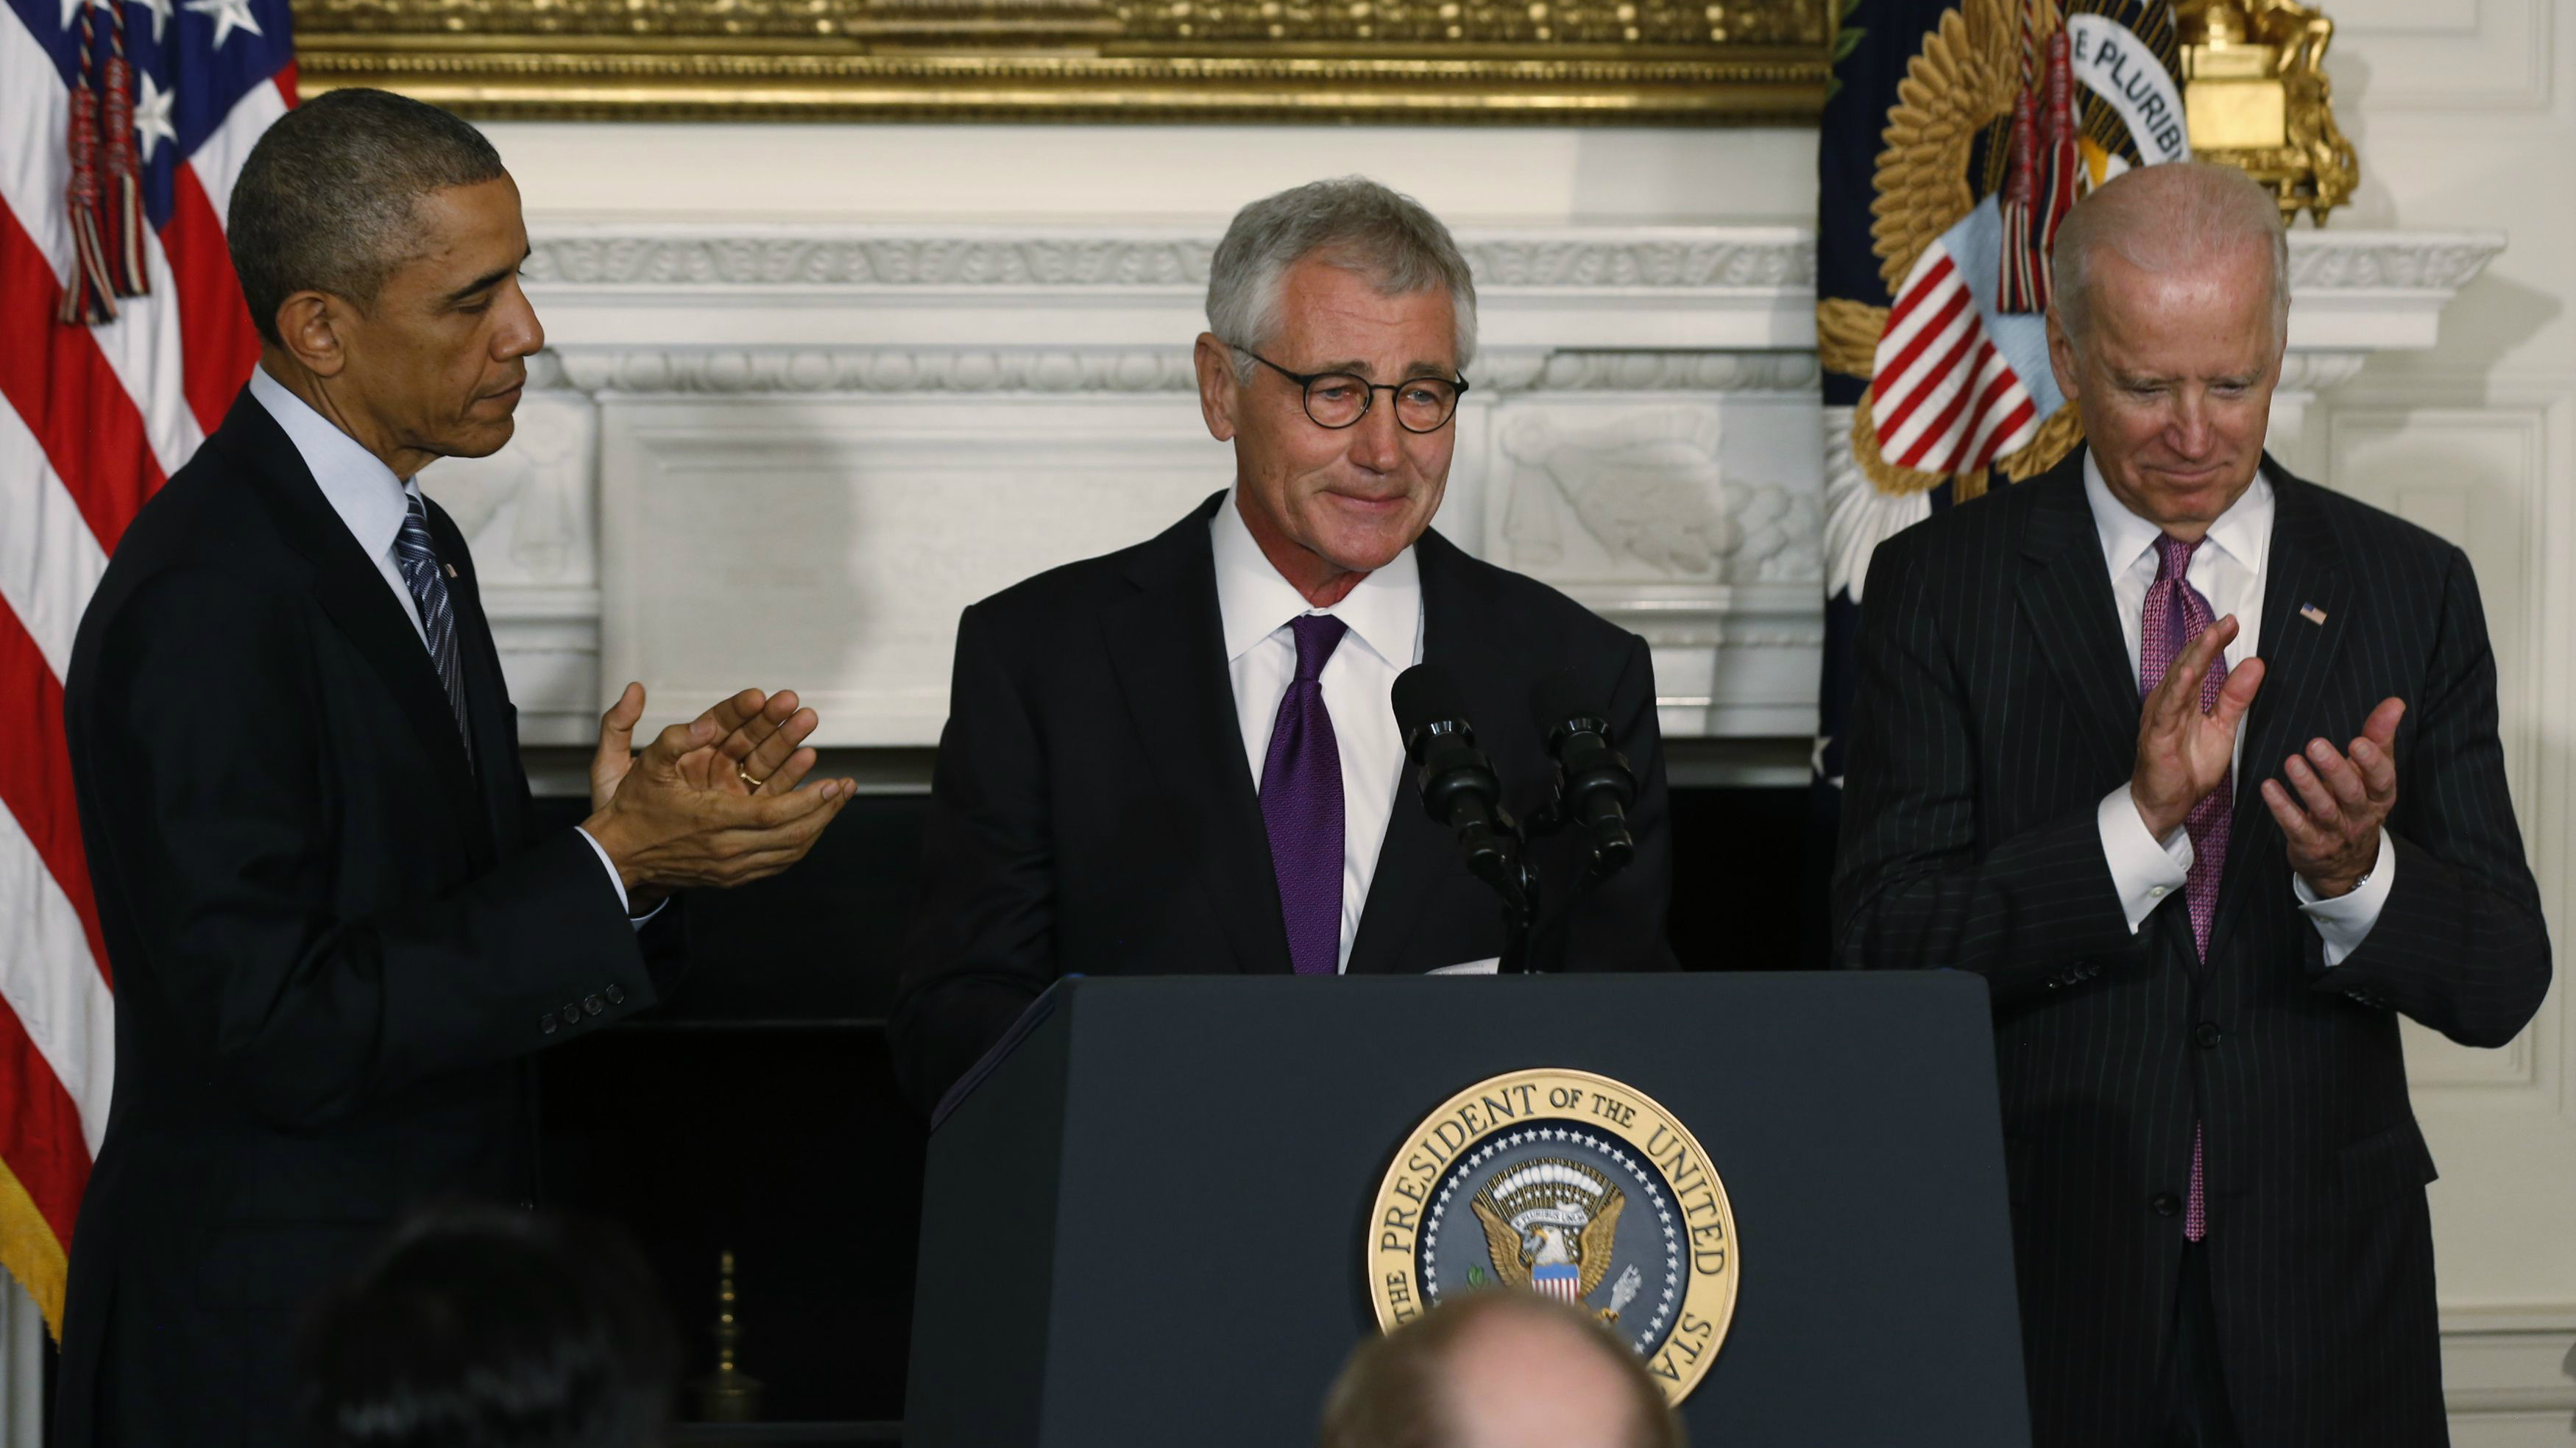 U.S. President Barack Obama (L) and Vice President Joe Biden (R) applaud Defense Secretary Chuck Hagel after the president announced Hagel's resignaton at the White House in Washington, November 24, 2014. REUTERS/Larry Downing (UNITED STATES - Tags: POLITICS MILITARY TPX IMAGES OF THE DAY)